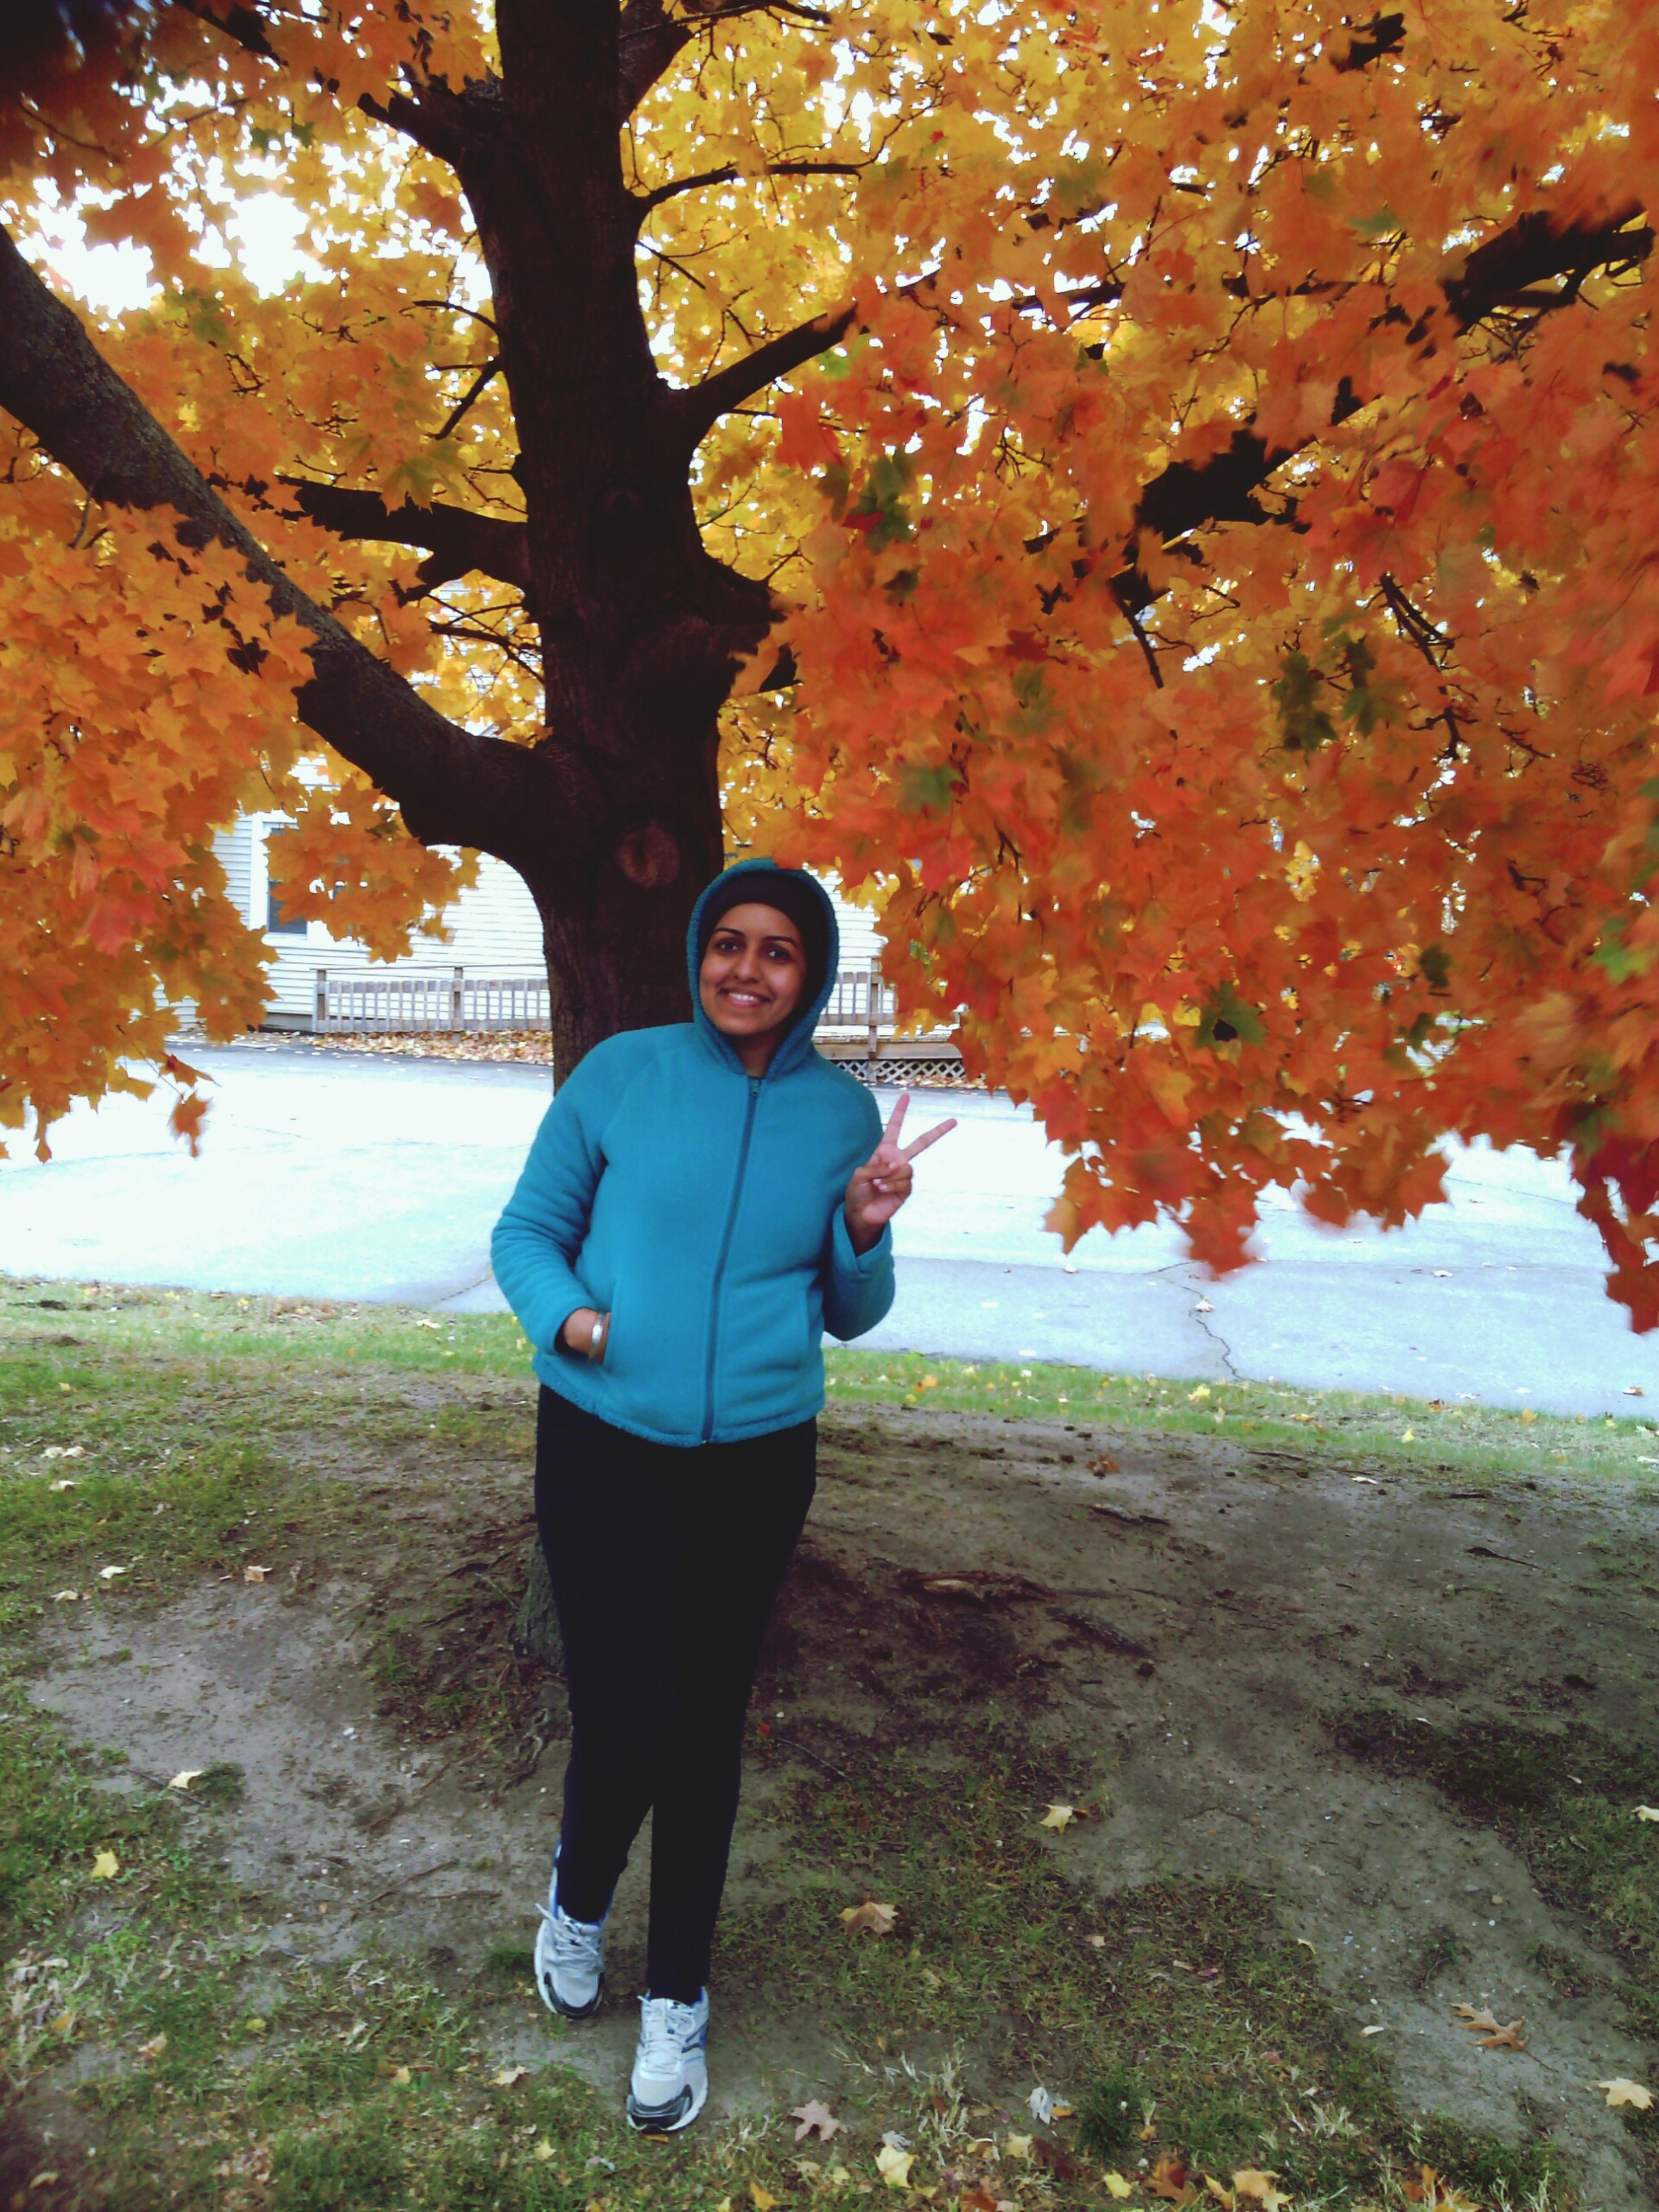 lifestyles, tree, leisure activity, full length, autumn, standing, casual clothing, season, change, leaf, rear view, nature, walking, tree trunk, day, growth, outdoors, tranquility